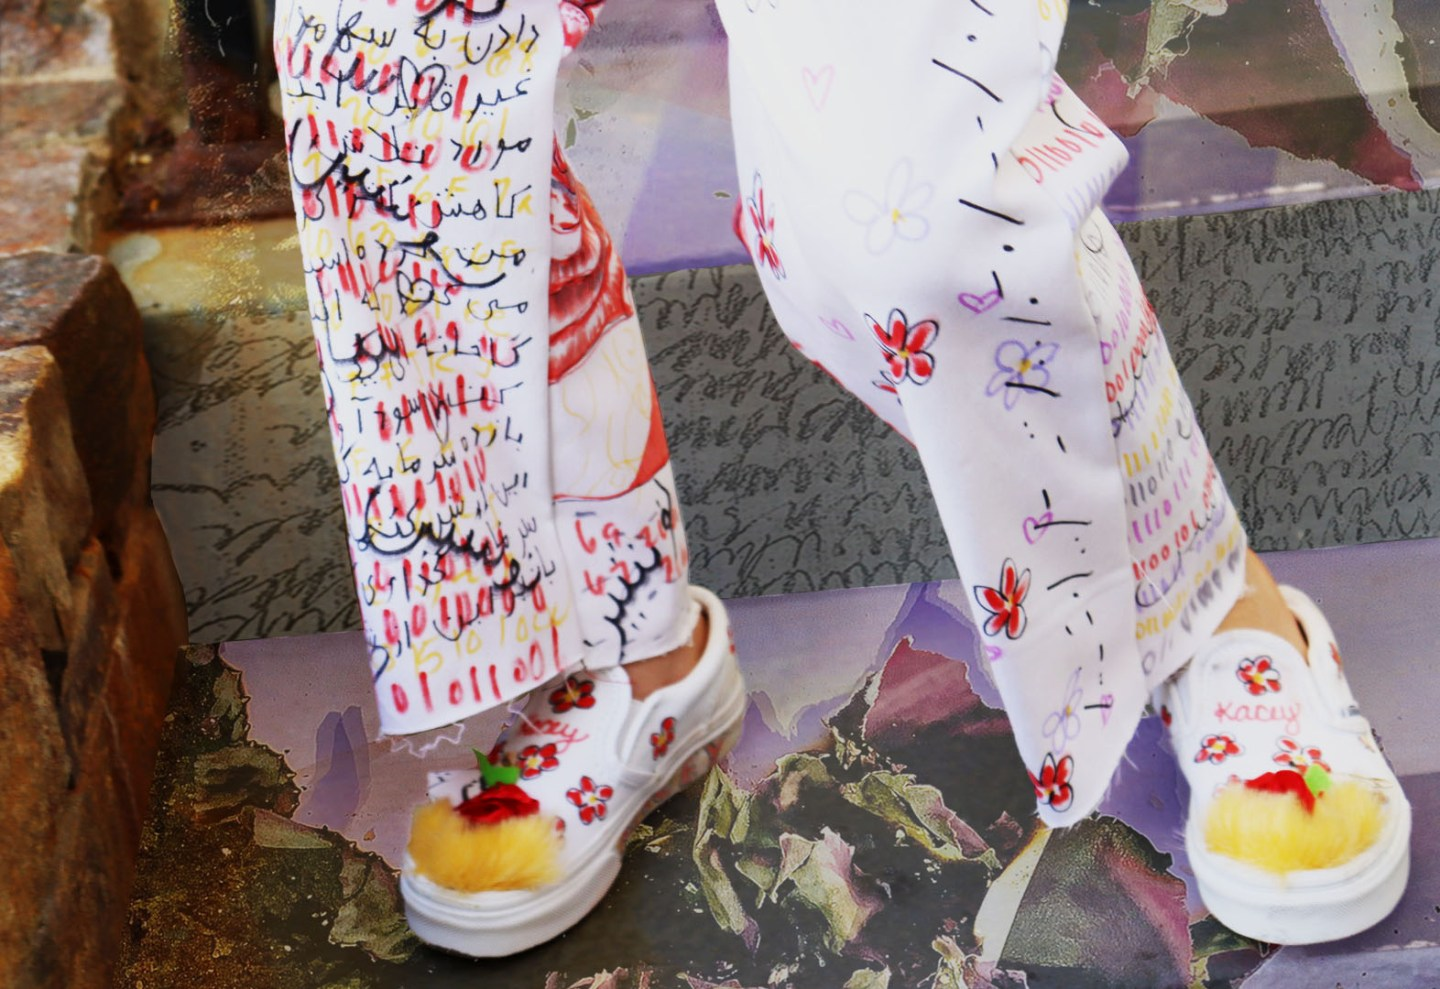 The pant consists of binary, hex, morse, code, and farsi writing. The back has an image on each side that when joined, creates one image. The shoes are custom slip-on Vans made for the model.